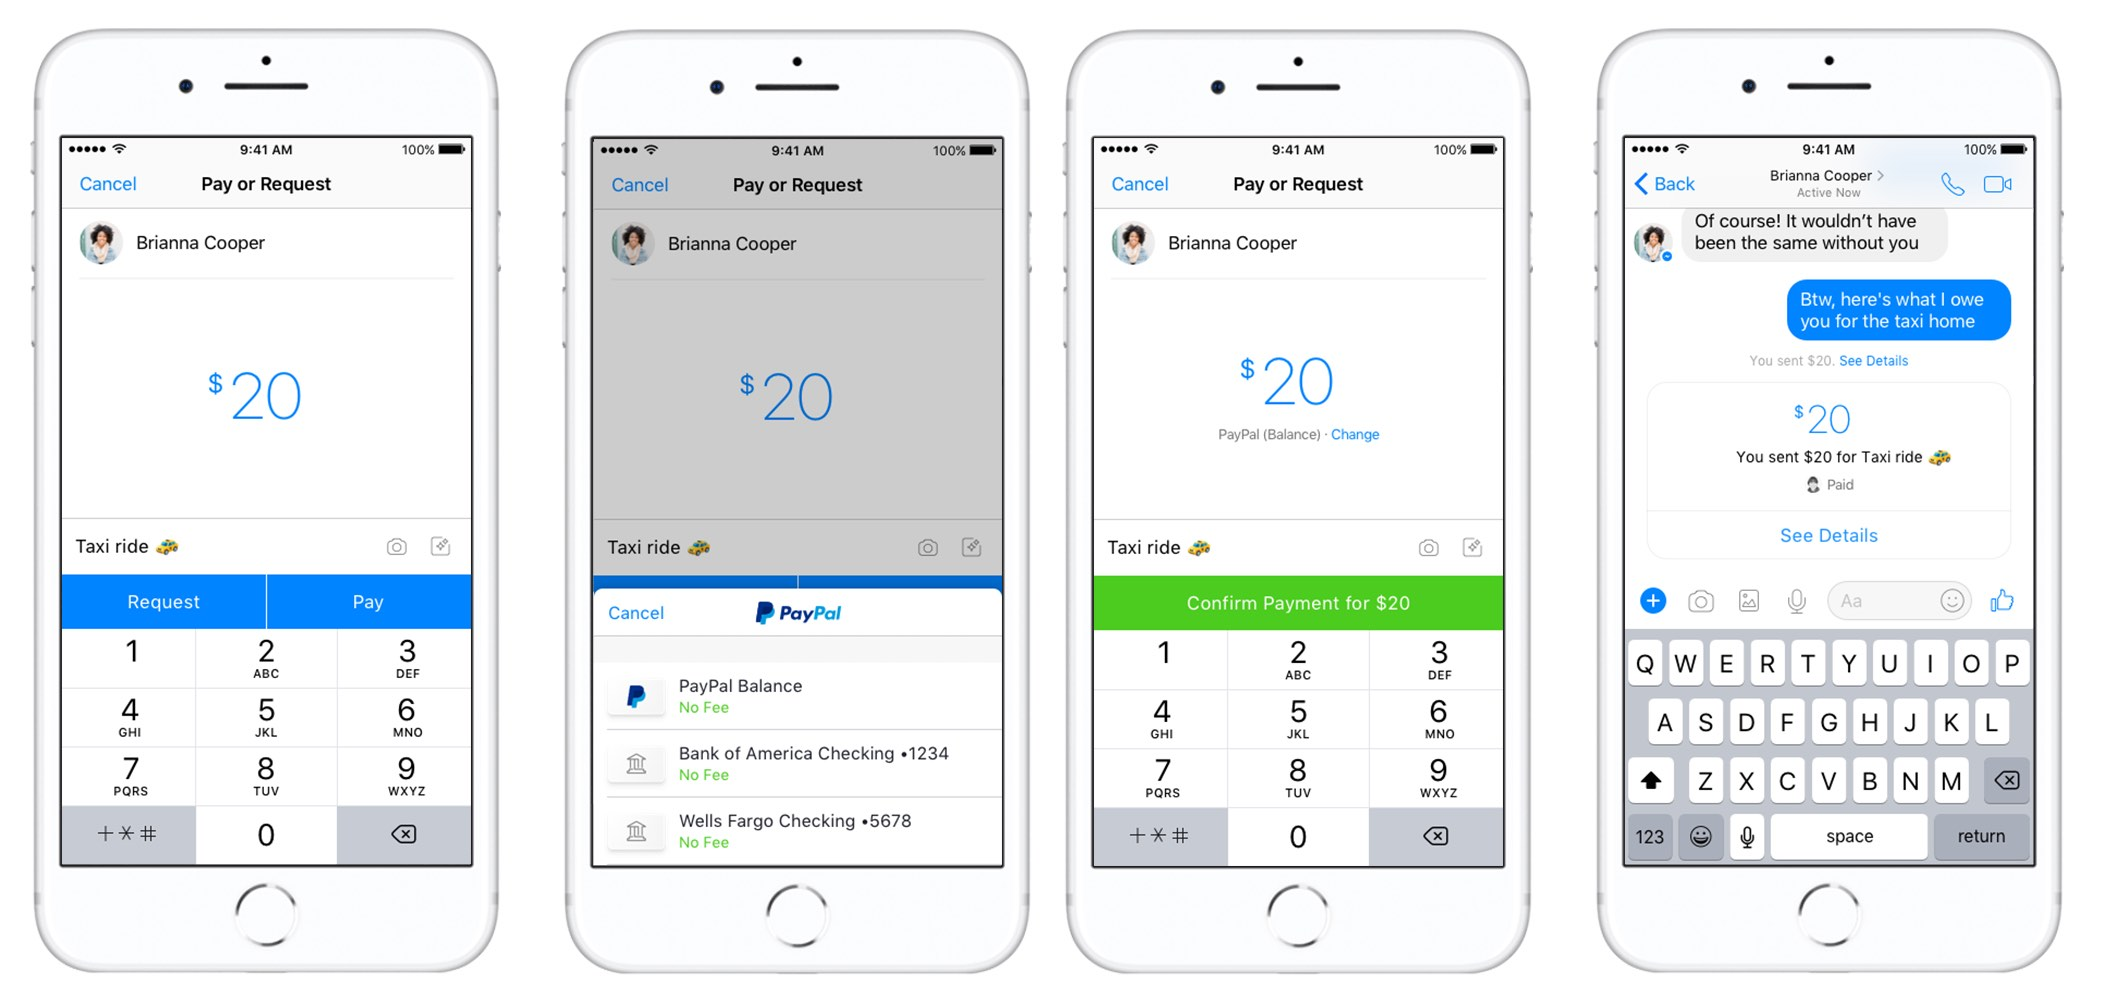 Facebook's Adding PayPal as a New Peer-to-Peer Payment Option in Messenger | Social Media Today